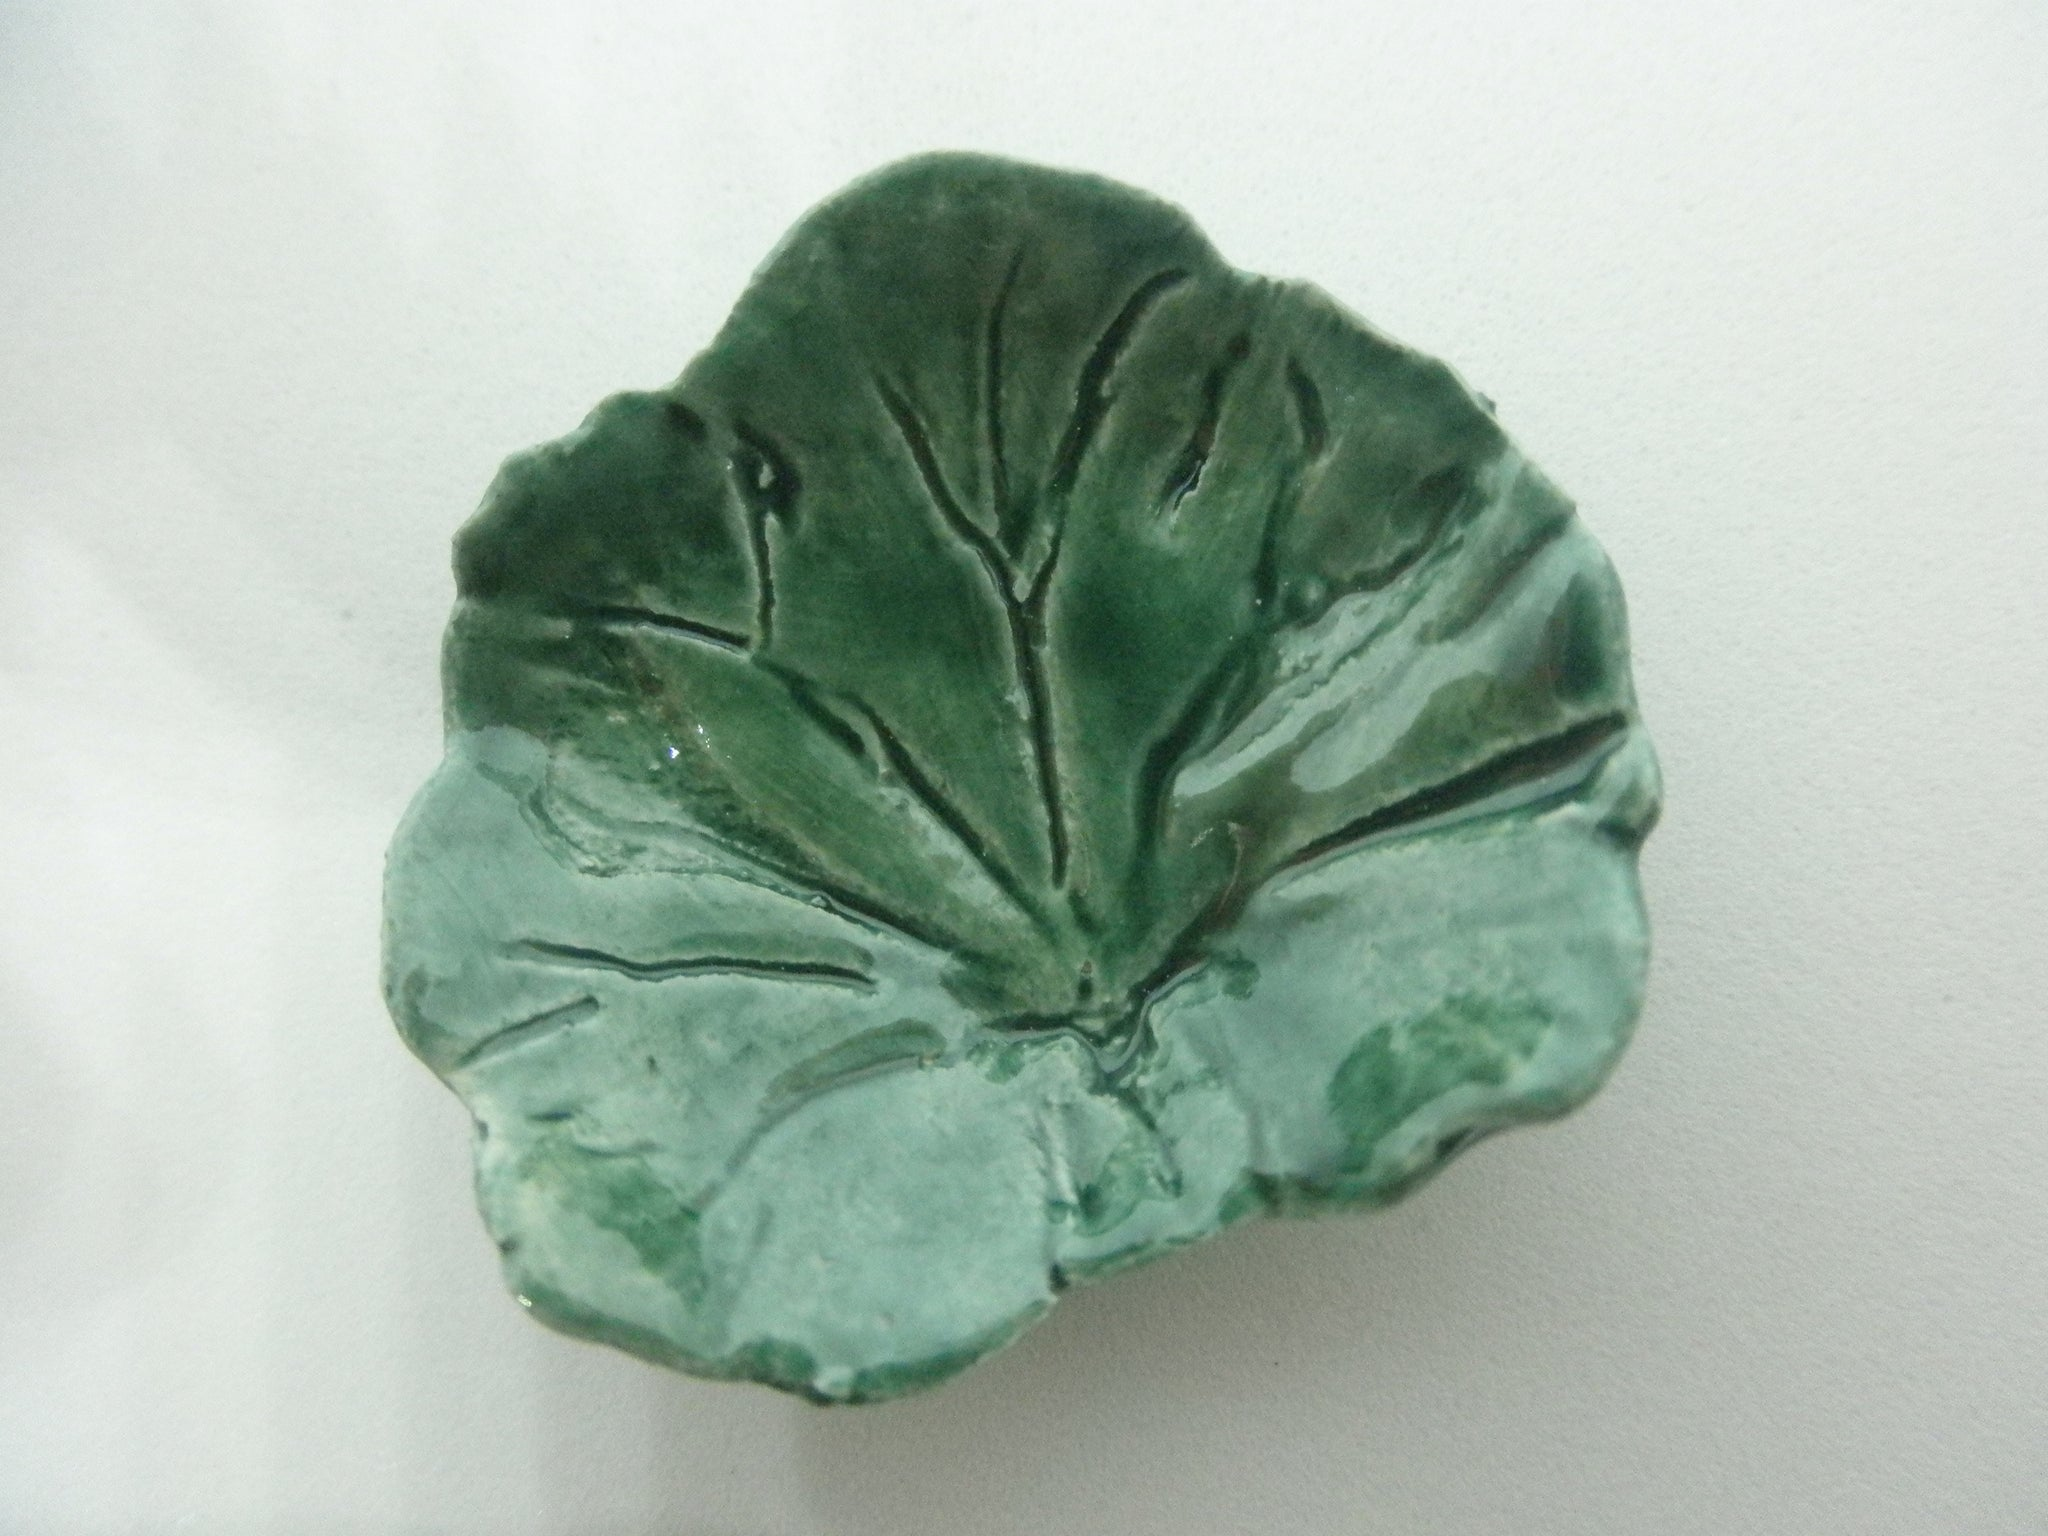 Miniature ceramic coffee table leaf - green b